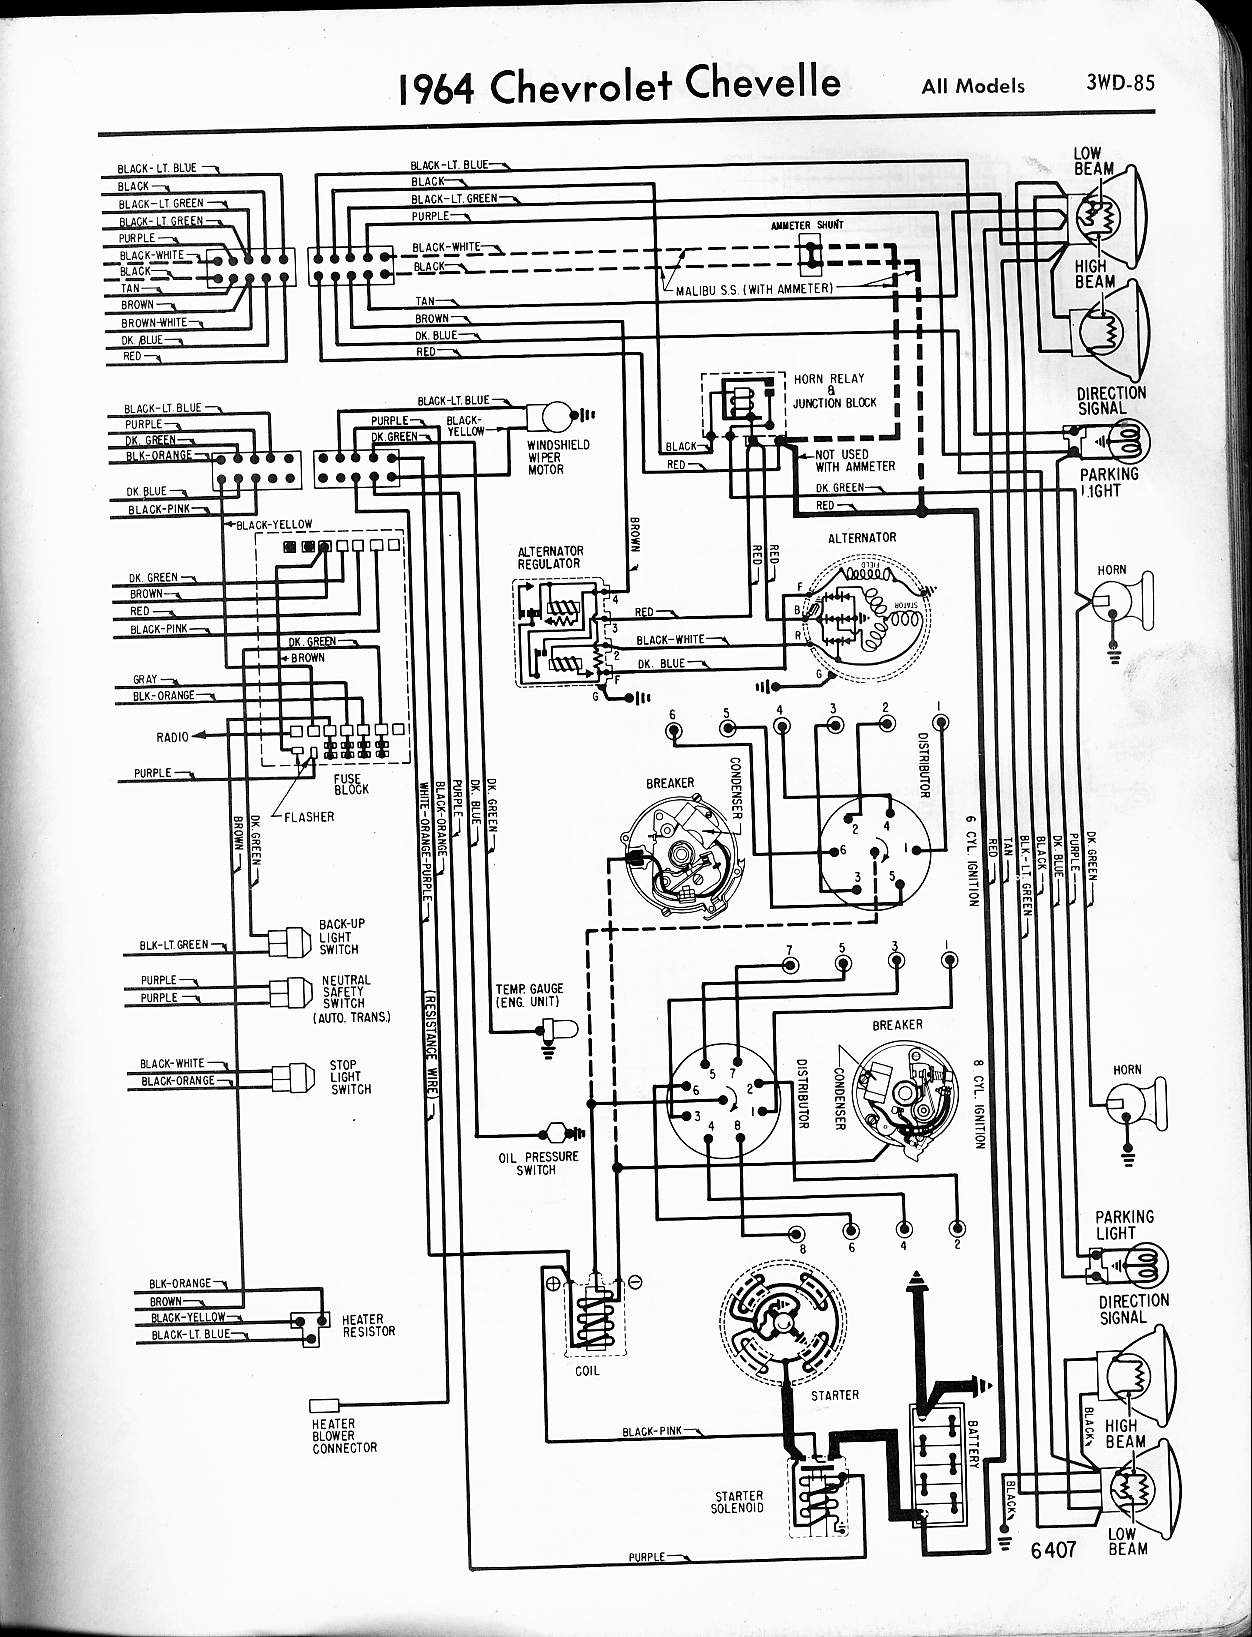 1966 Gto Fuse Panel Diagram Reinvent Your Wiring 2006 F 150 Box 66 Ignition Switch Detailed Schematics Rh Mrskindsclass Com Ford